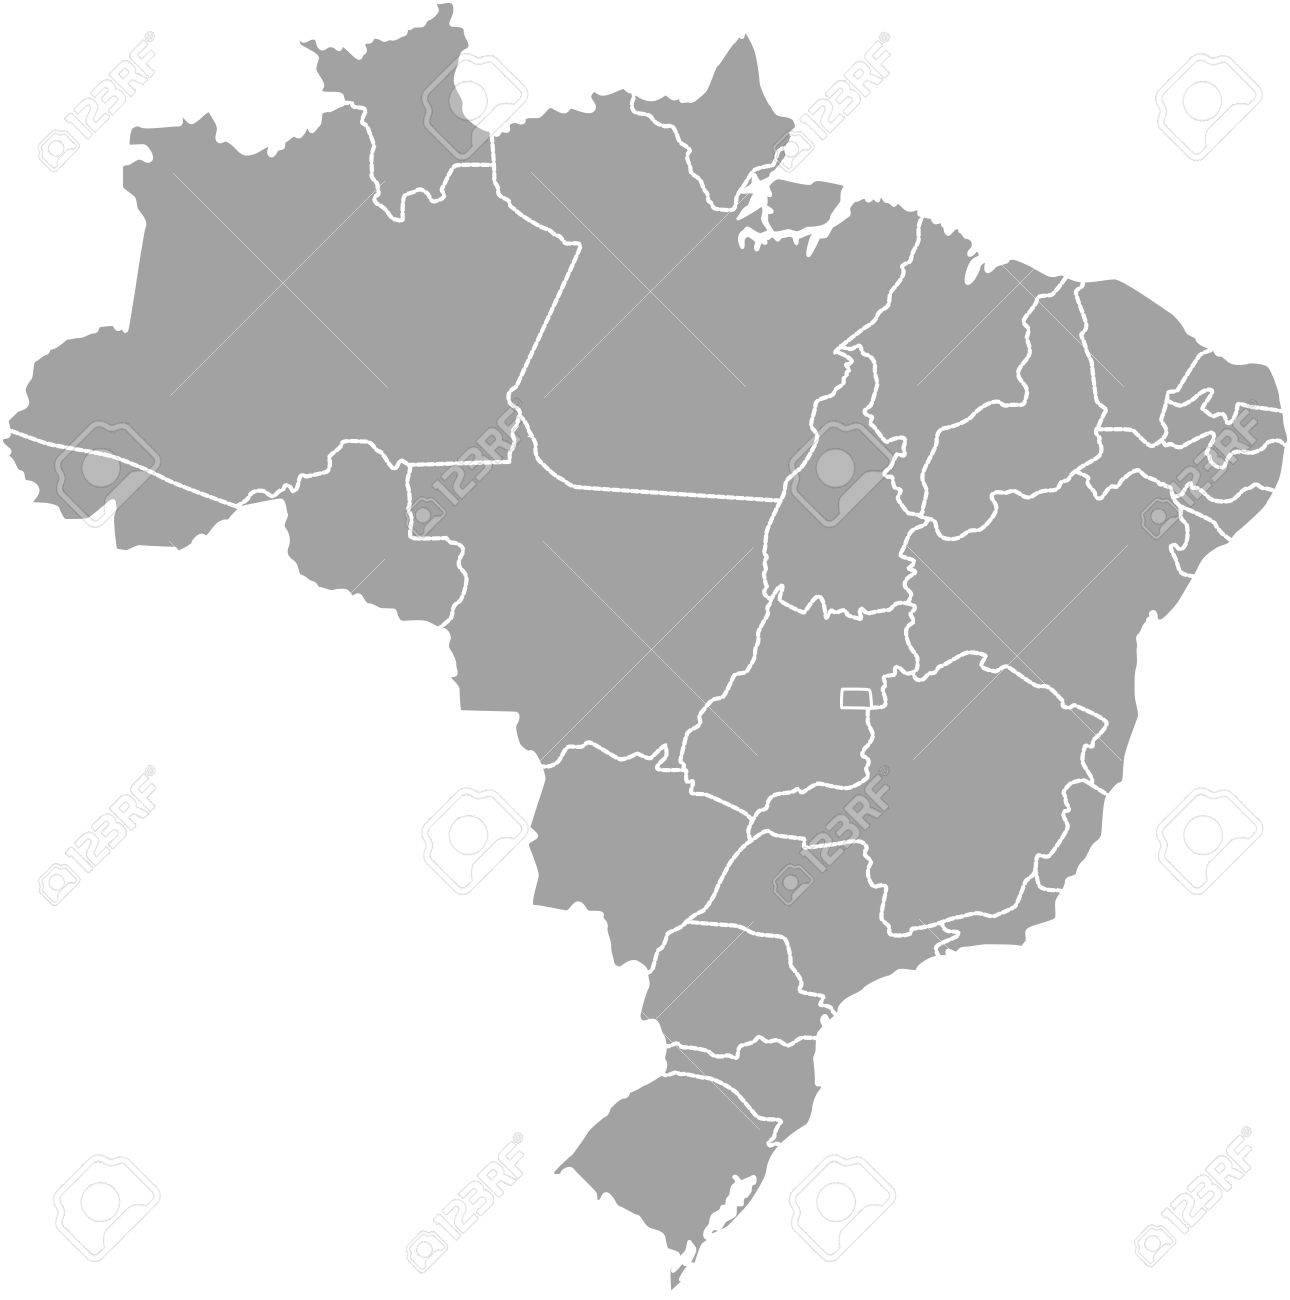 Brazil Map Outline With Borders Of Provinces Or States Royalty Free